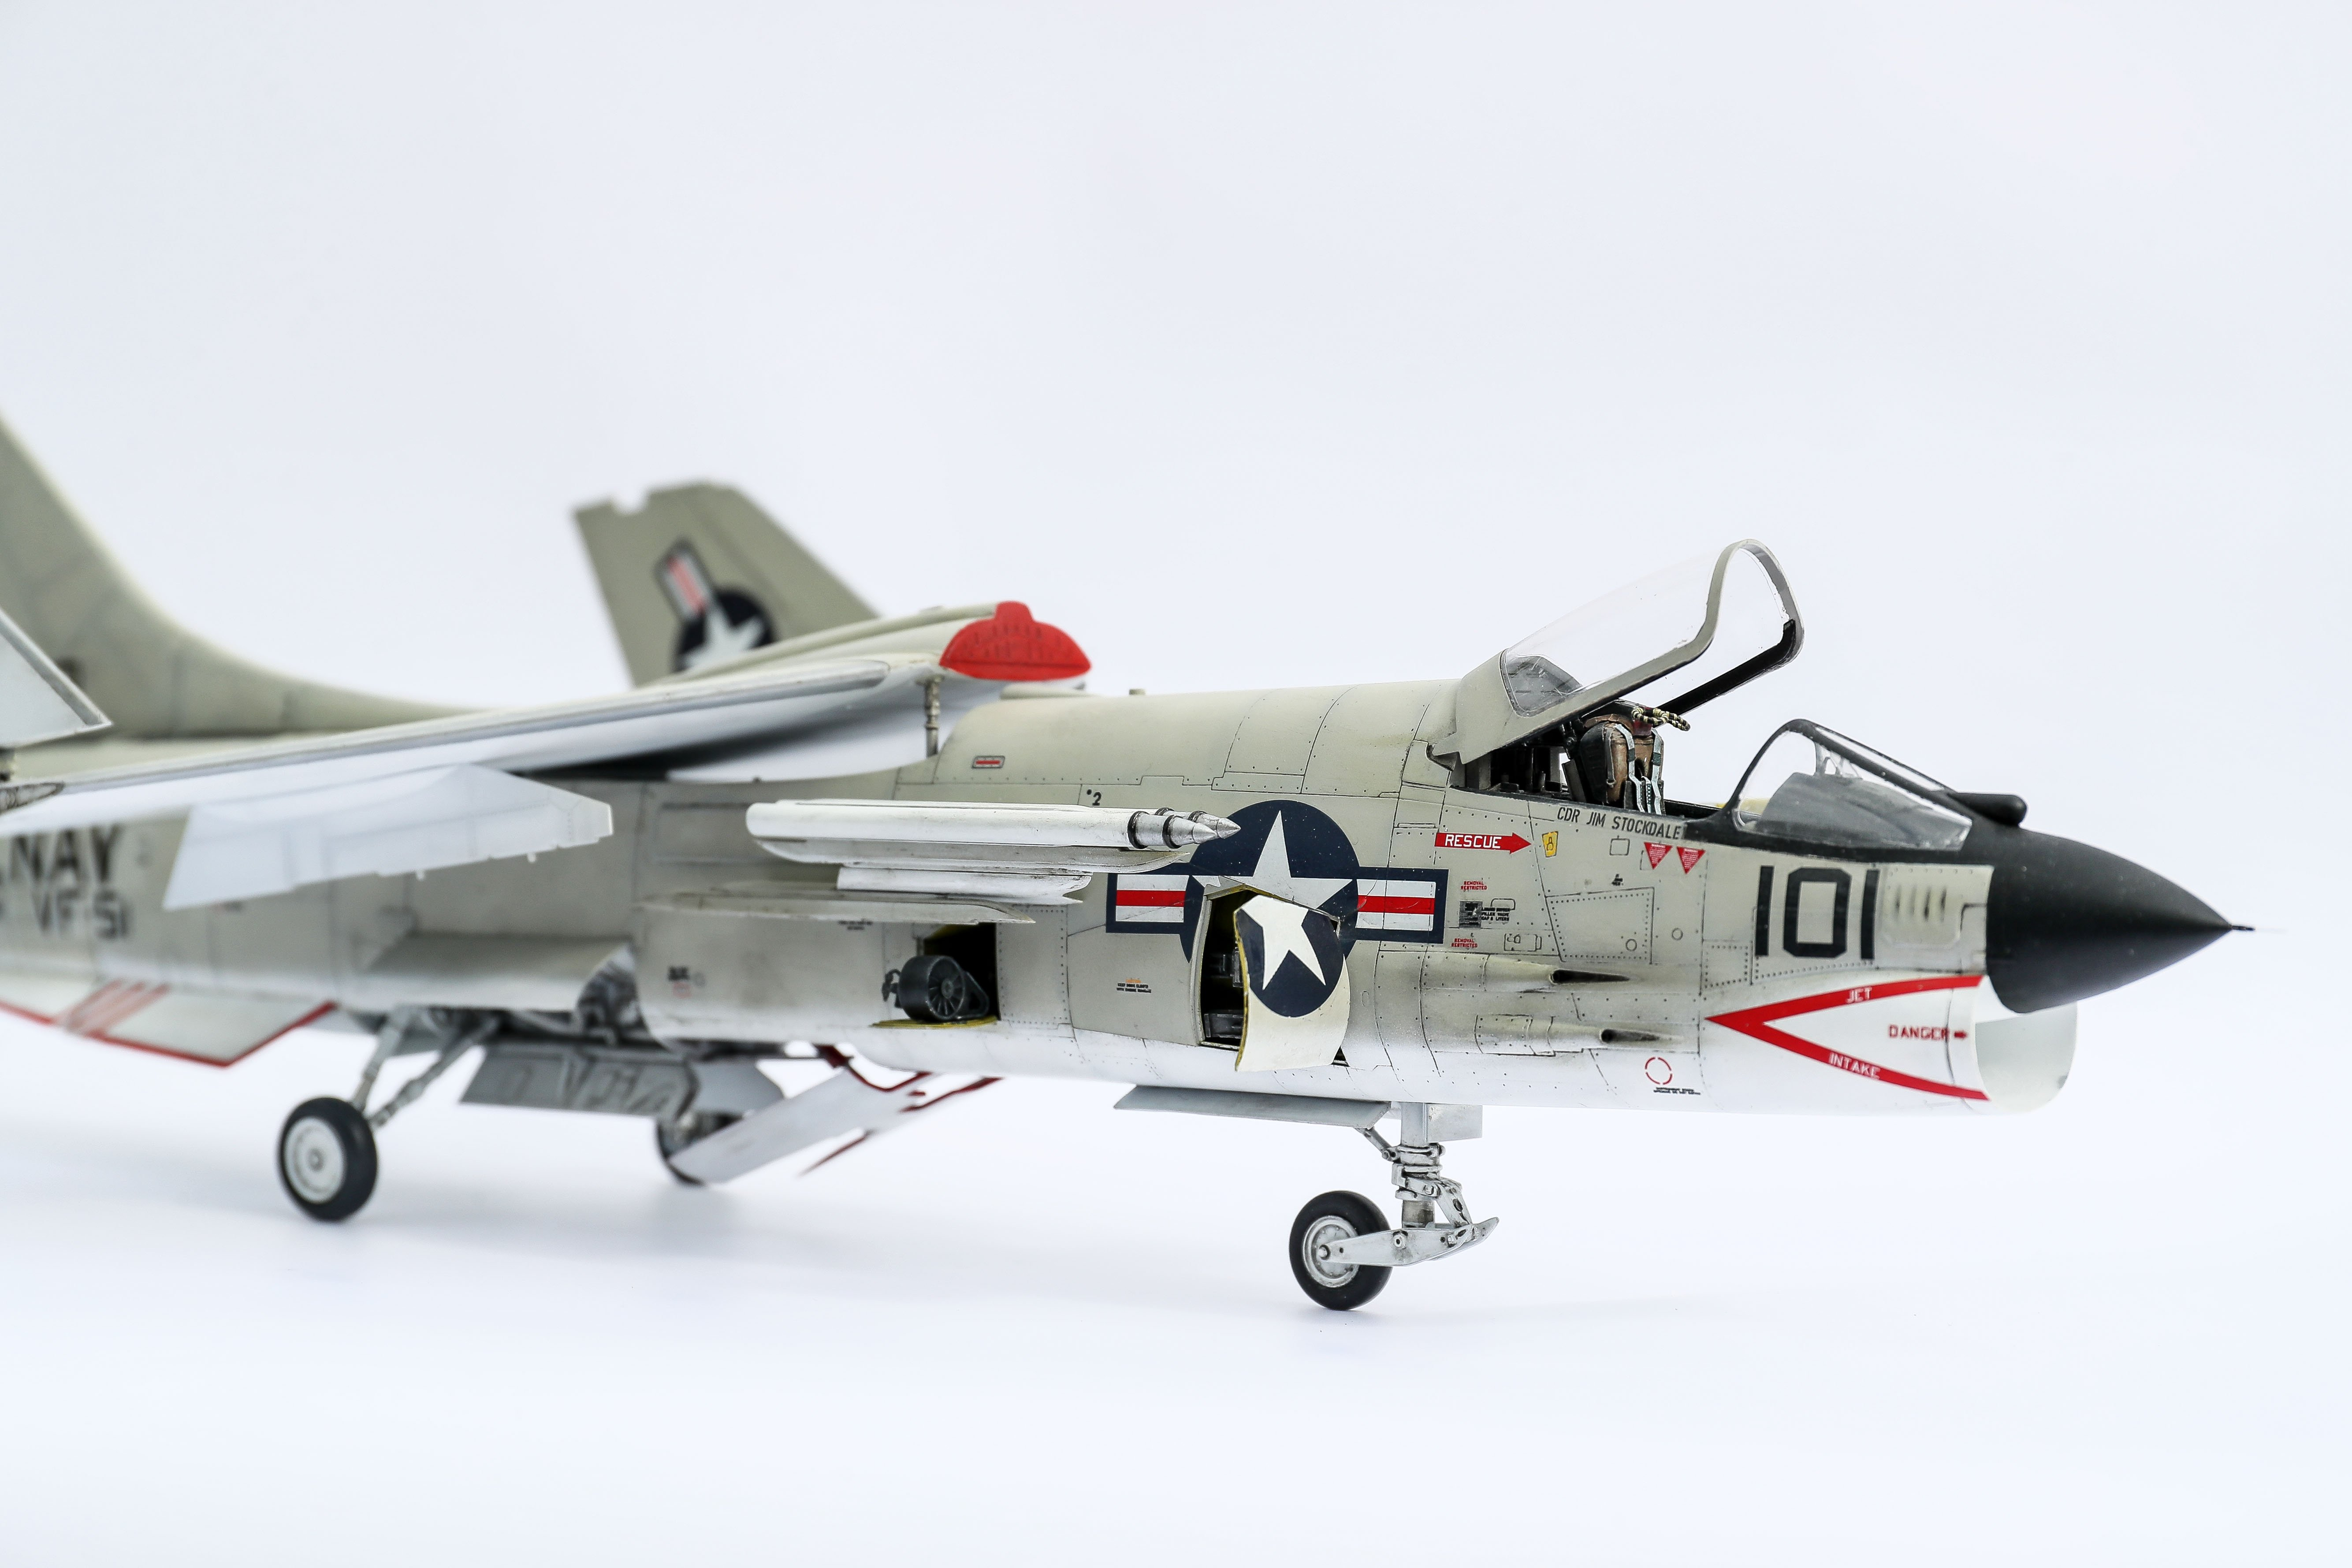 Trumpeter 1/32 F8e Crusader - LSM Aircraft Finished Work